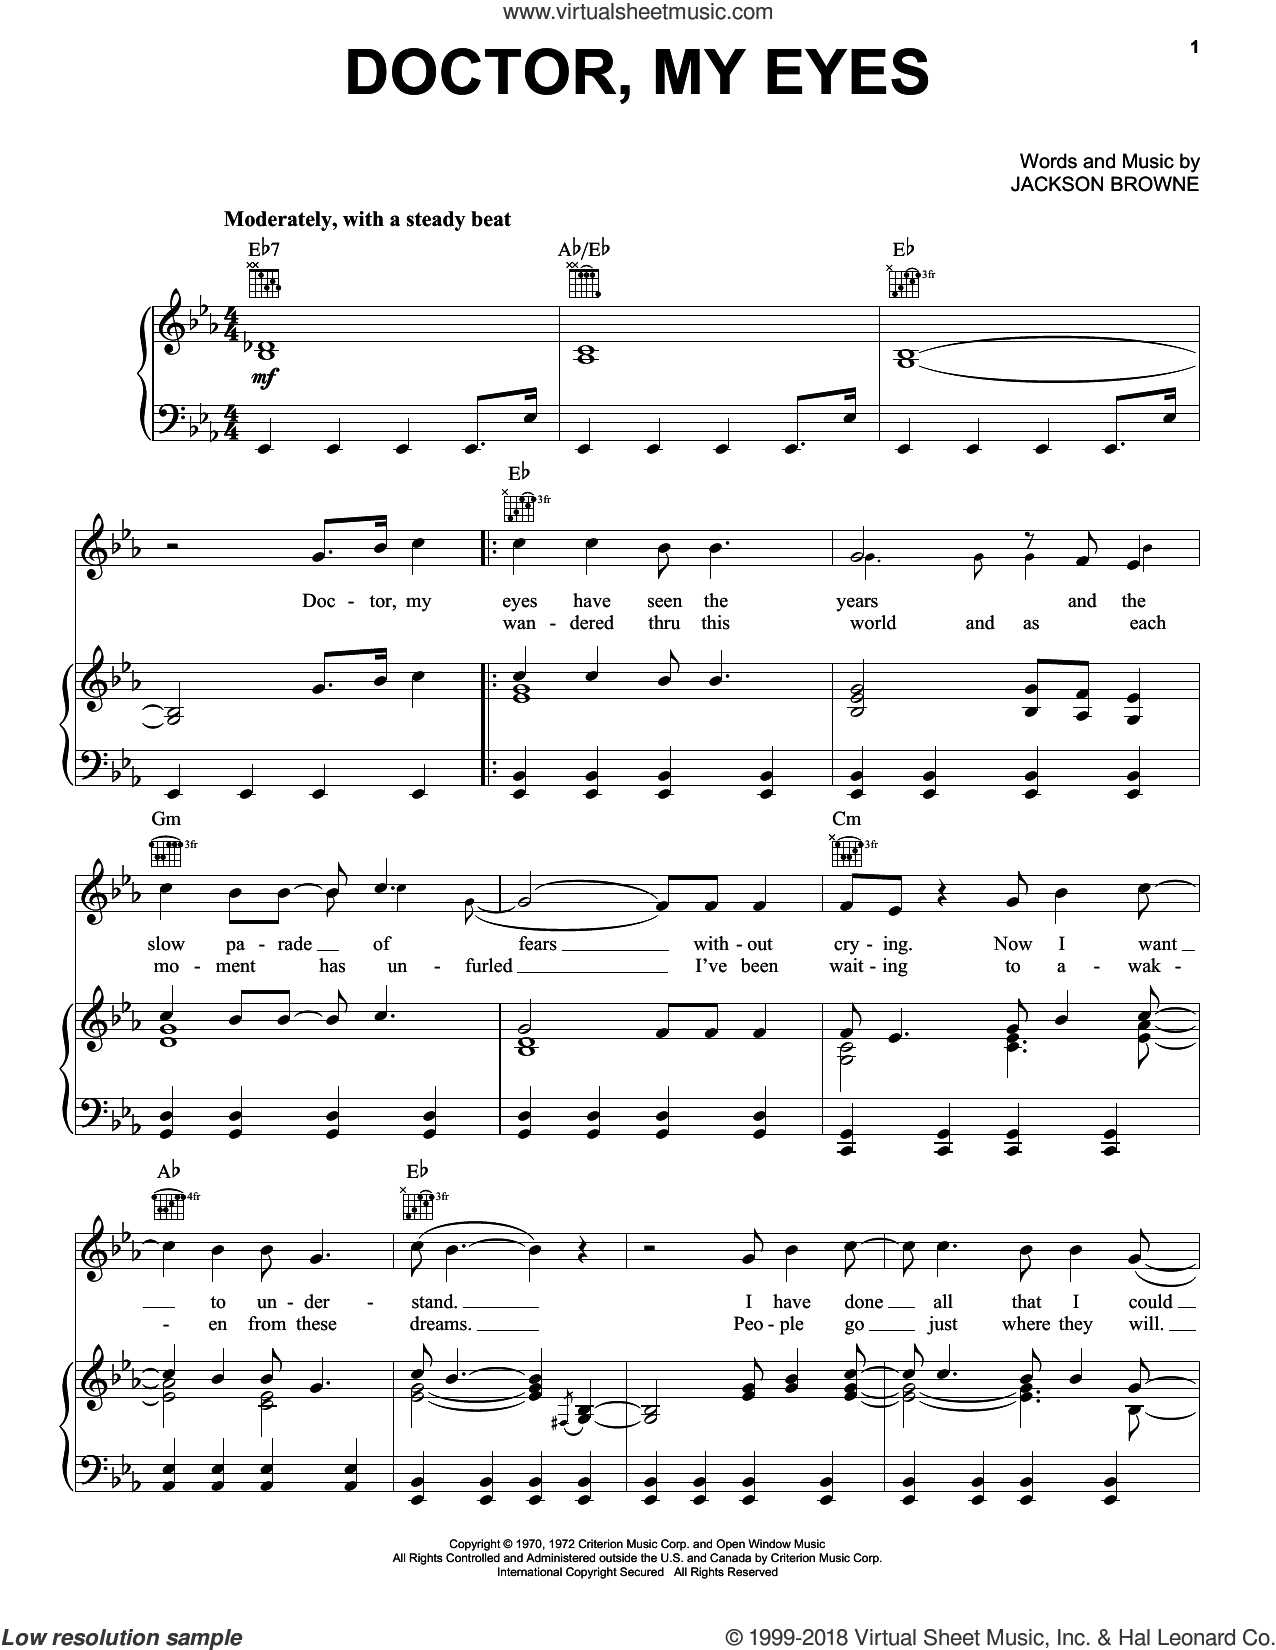 Doctor, My Eyes sheet music for voice, piano or guitar by Jackson Browne and The Jackson 5. Score Image Preview.